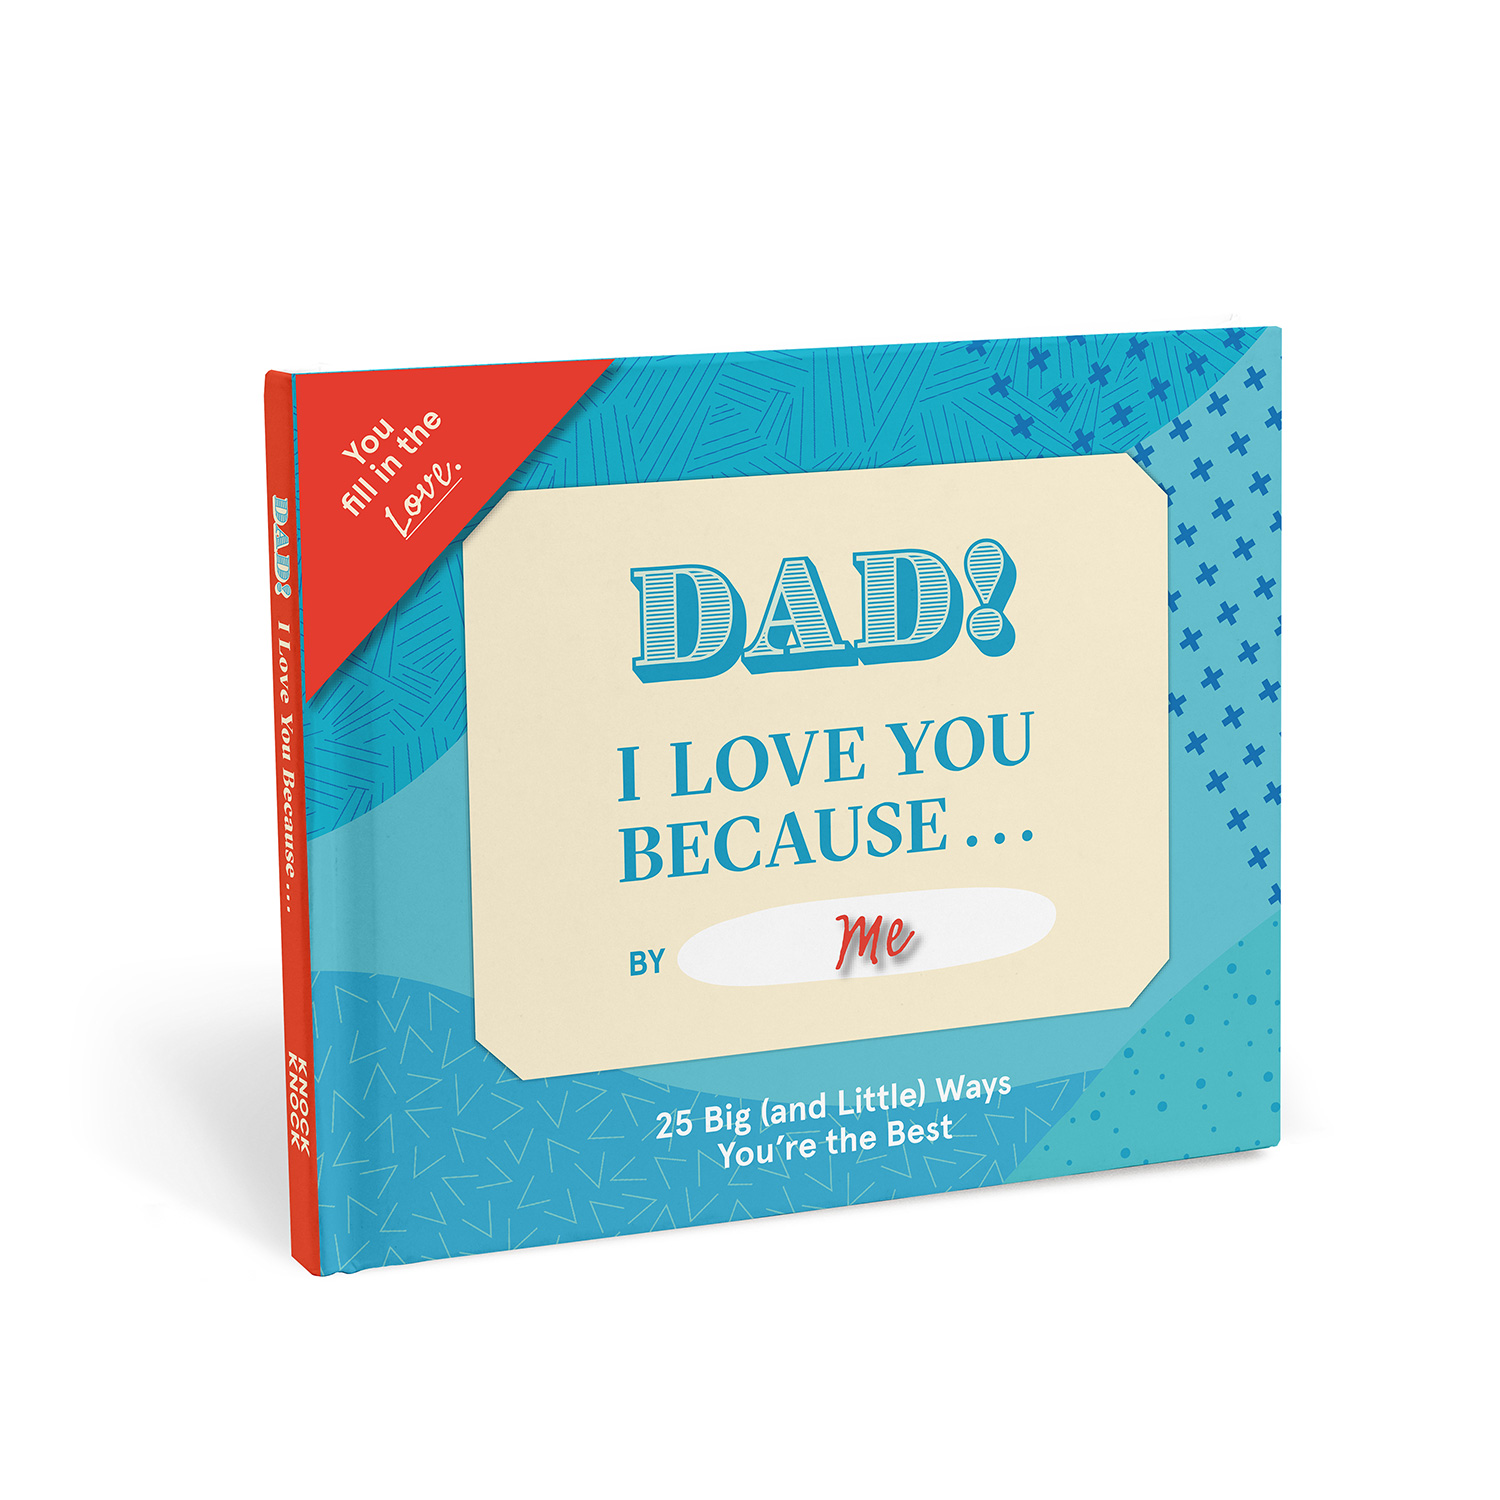 Fill in the Love Because Book: Dad, I Love You Because